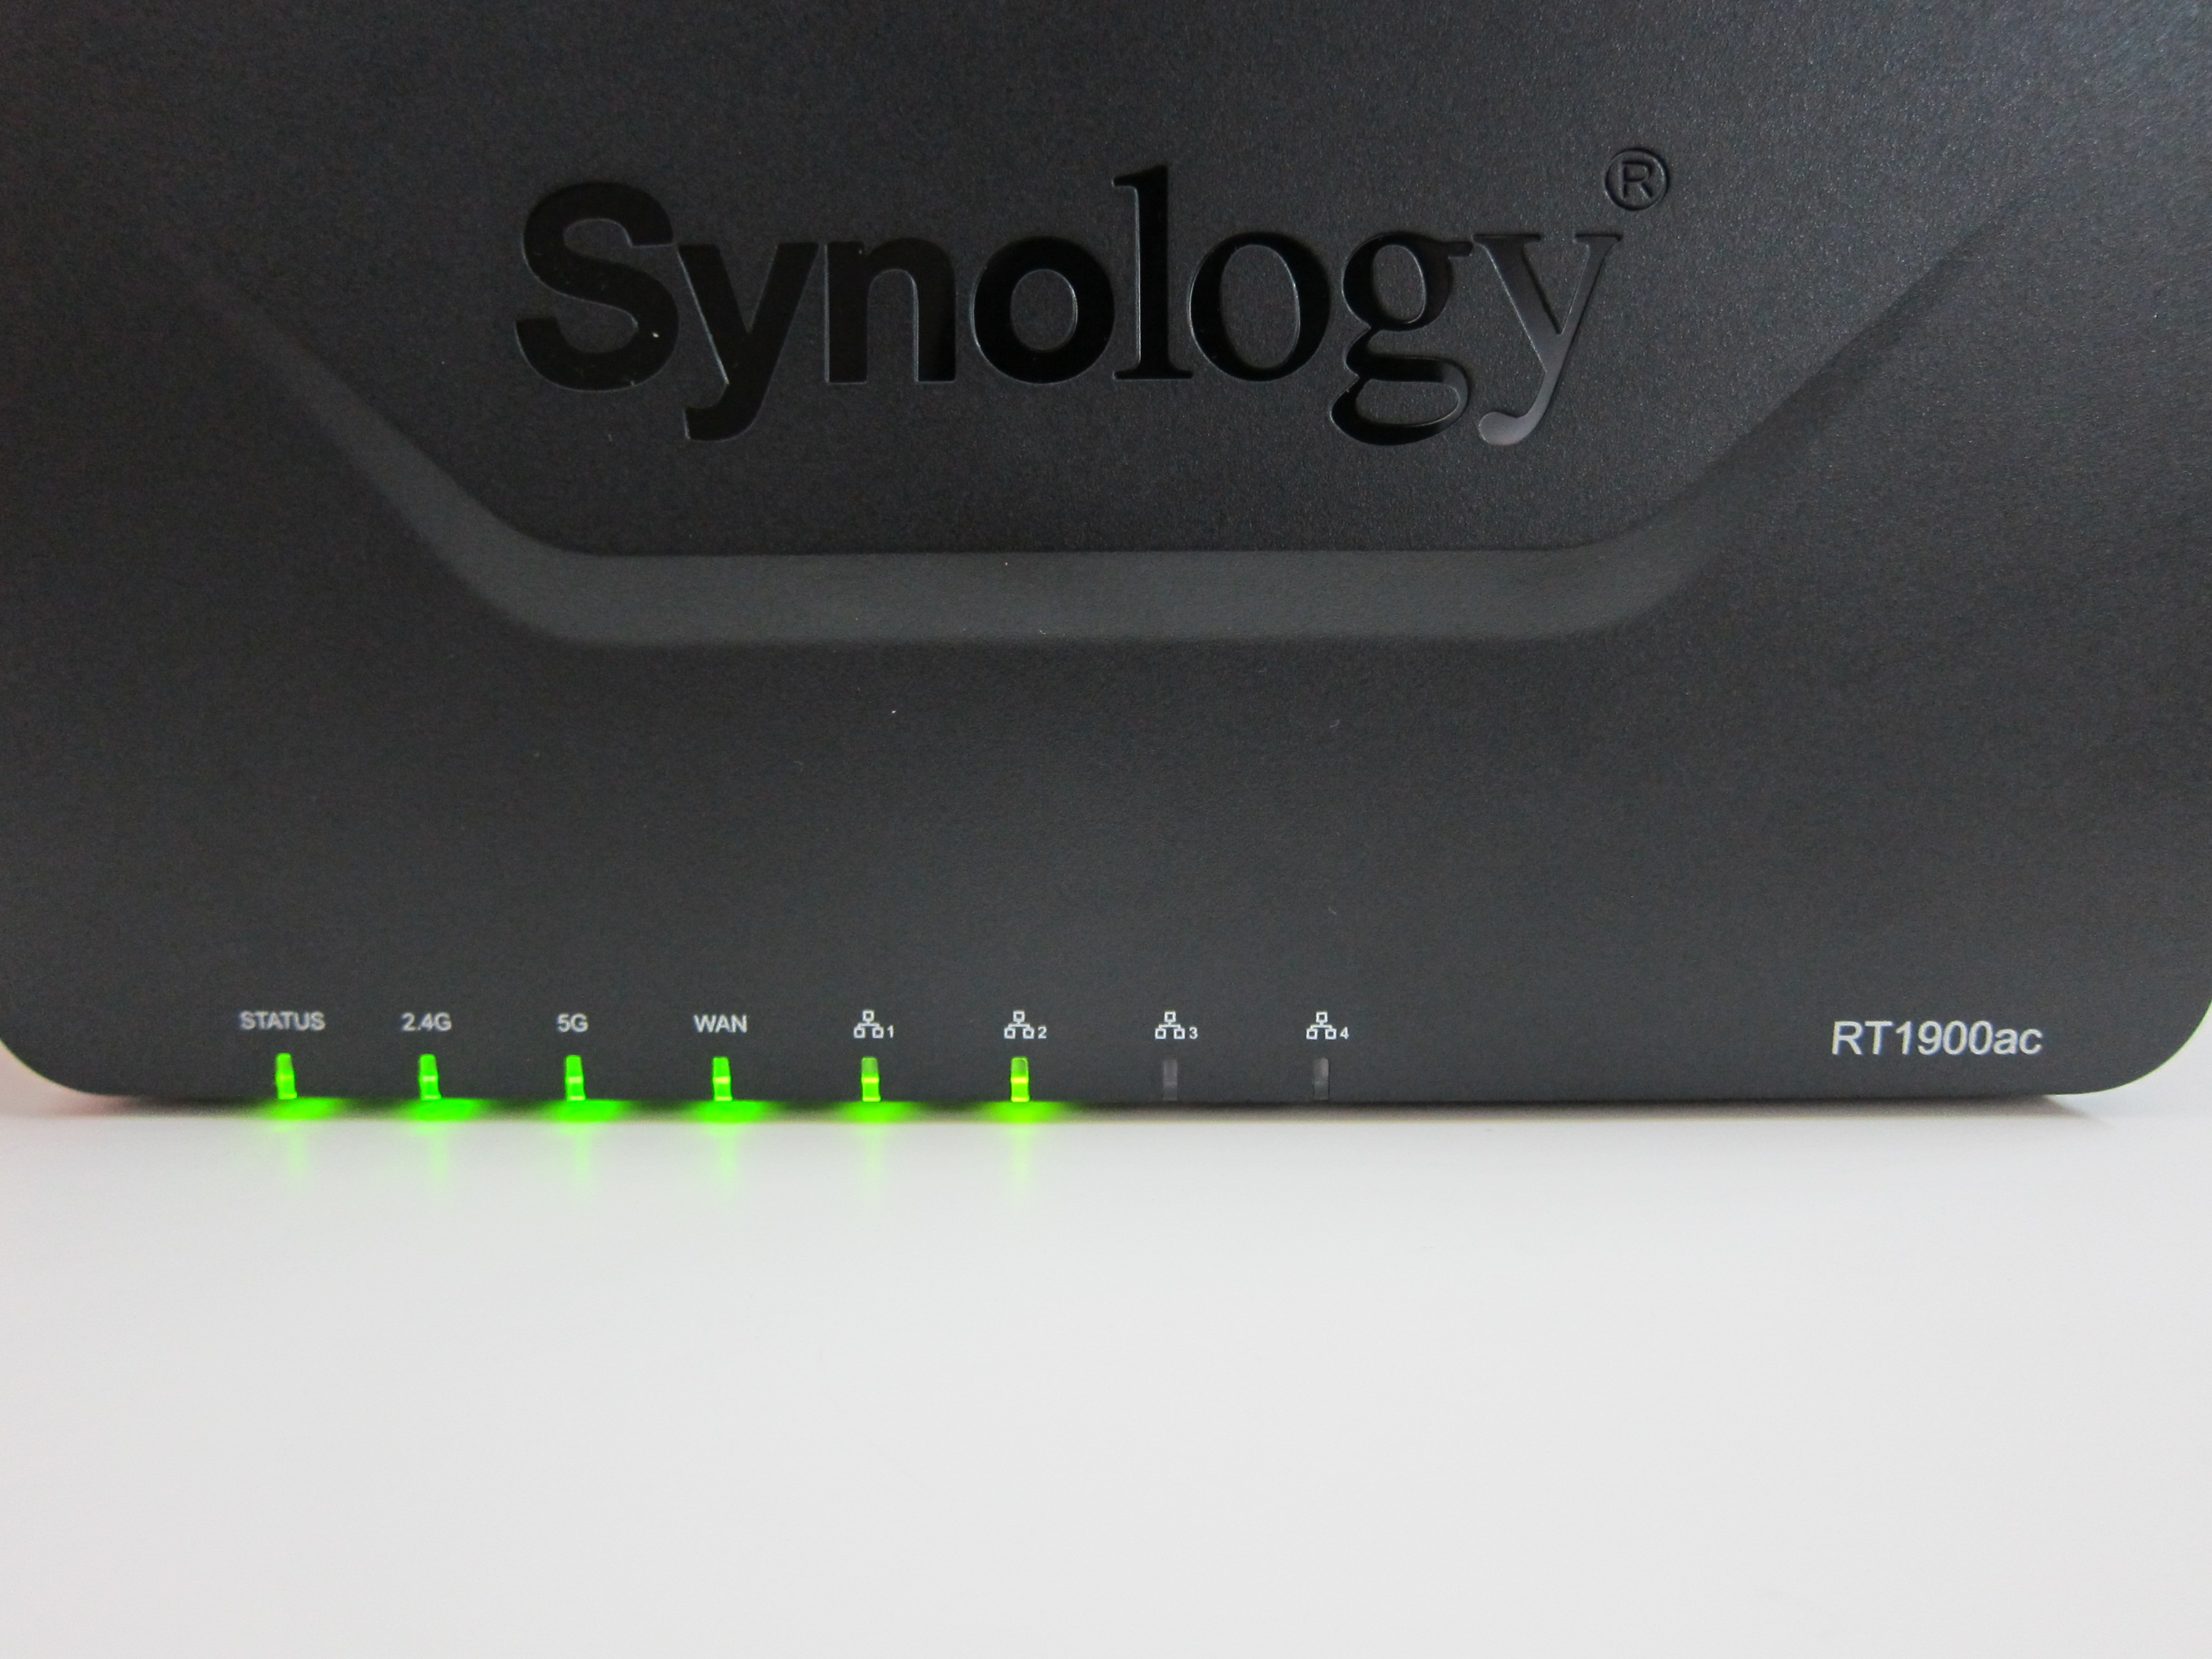 Wireless Home Network Router Broadcom Diagram Synology Rt1900ac Review Blog Led Indicators